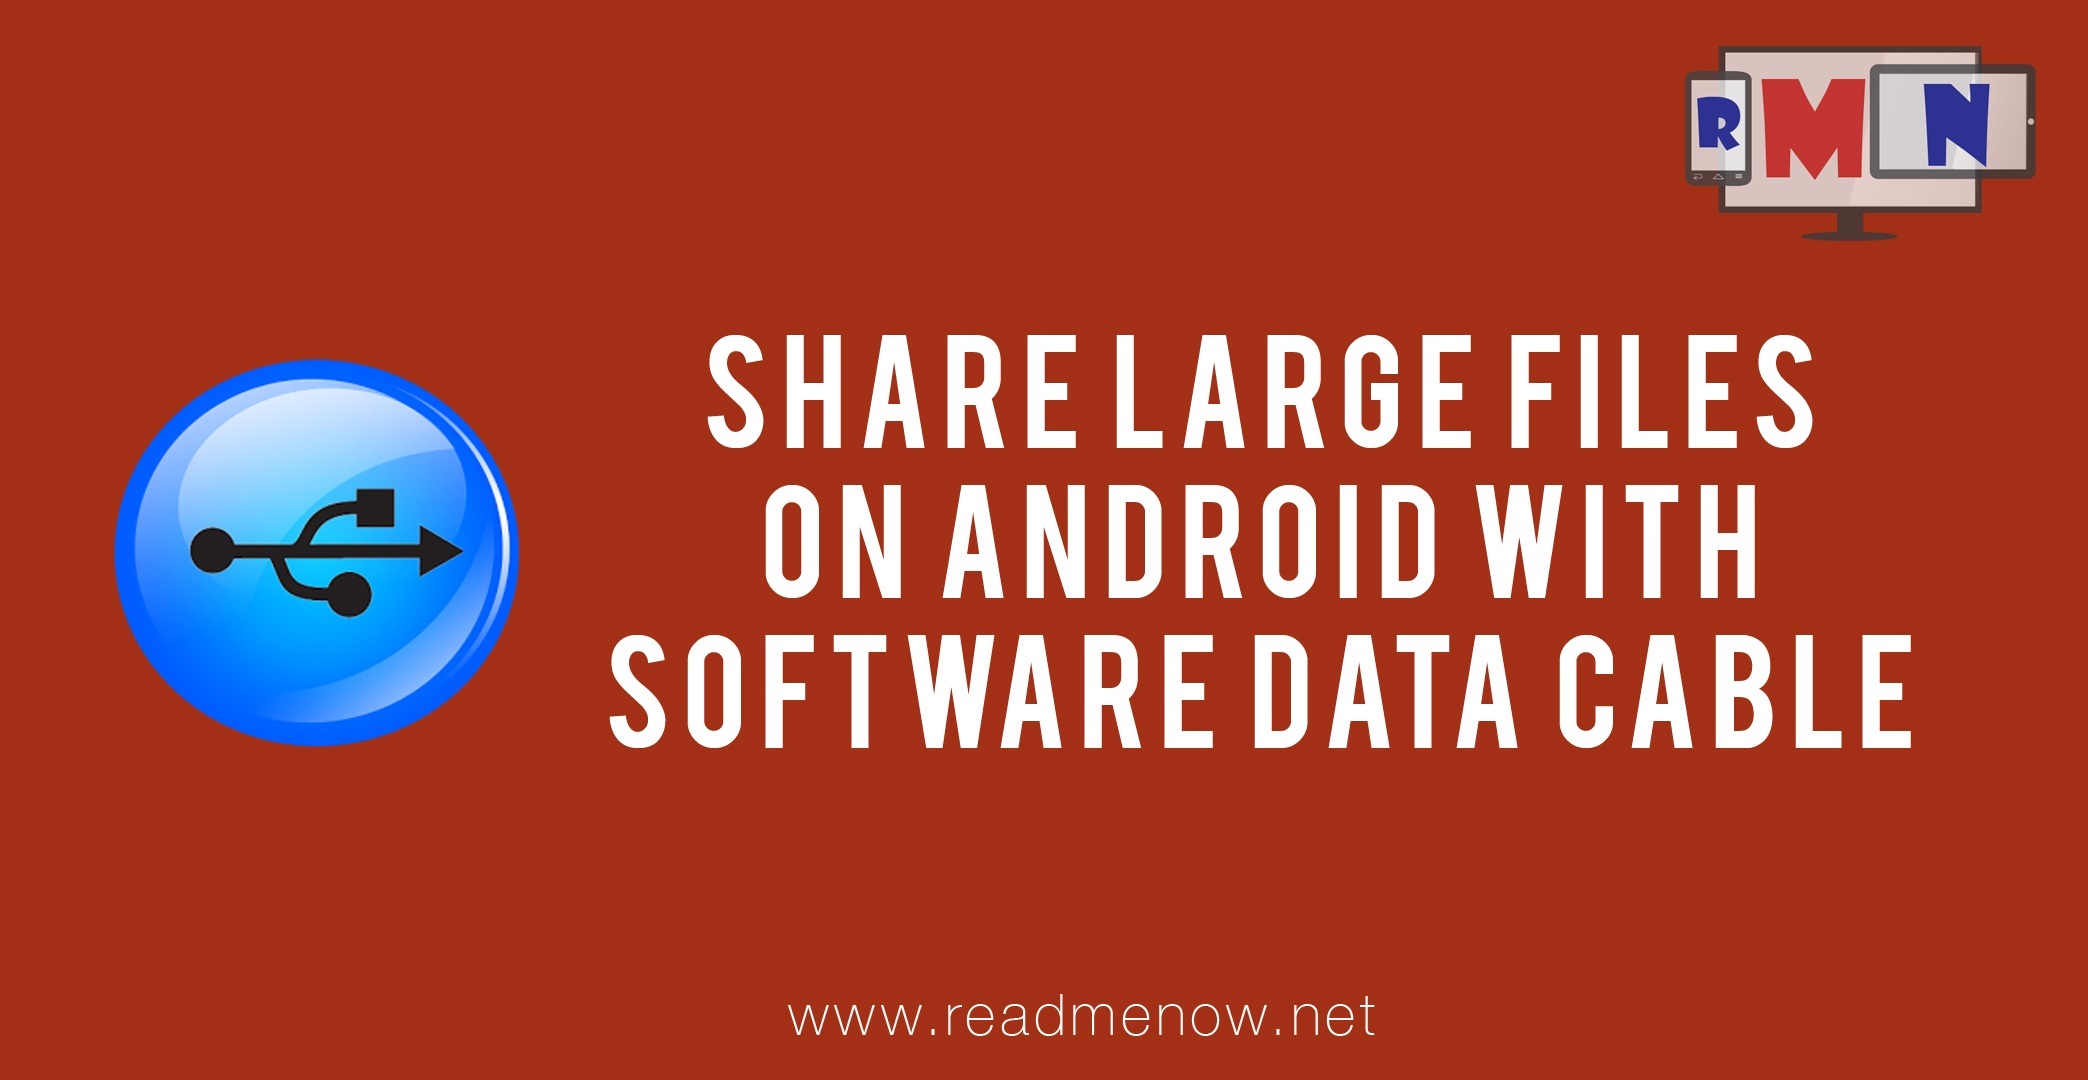 Share Large Files On Android In Minutes